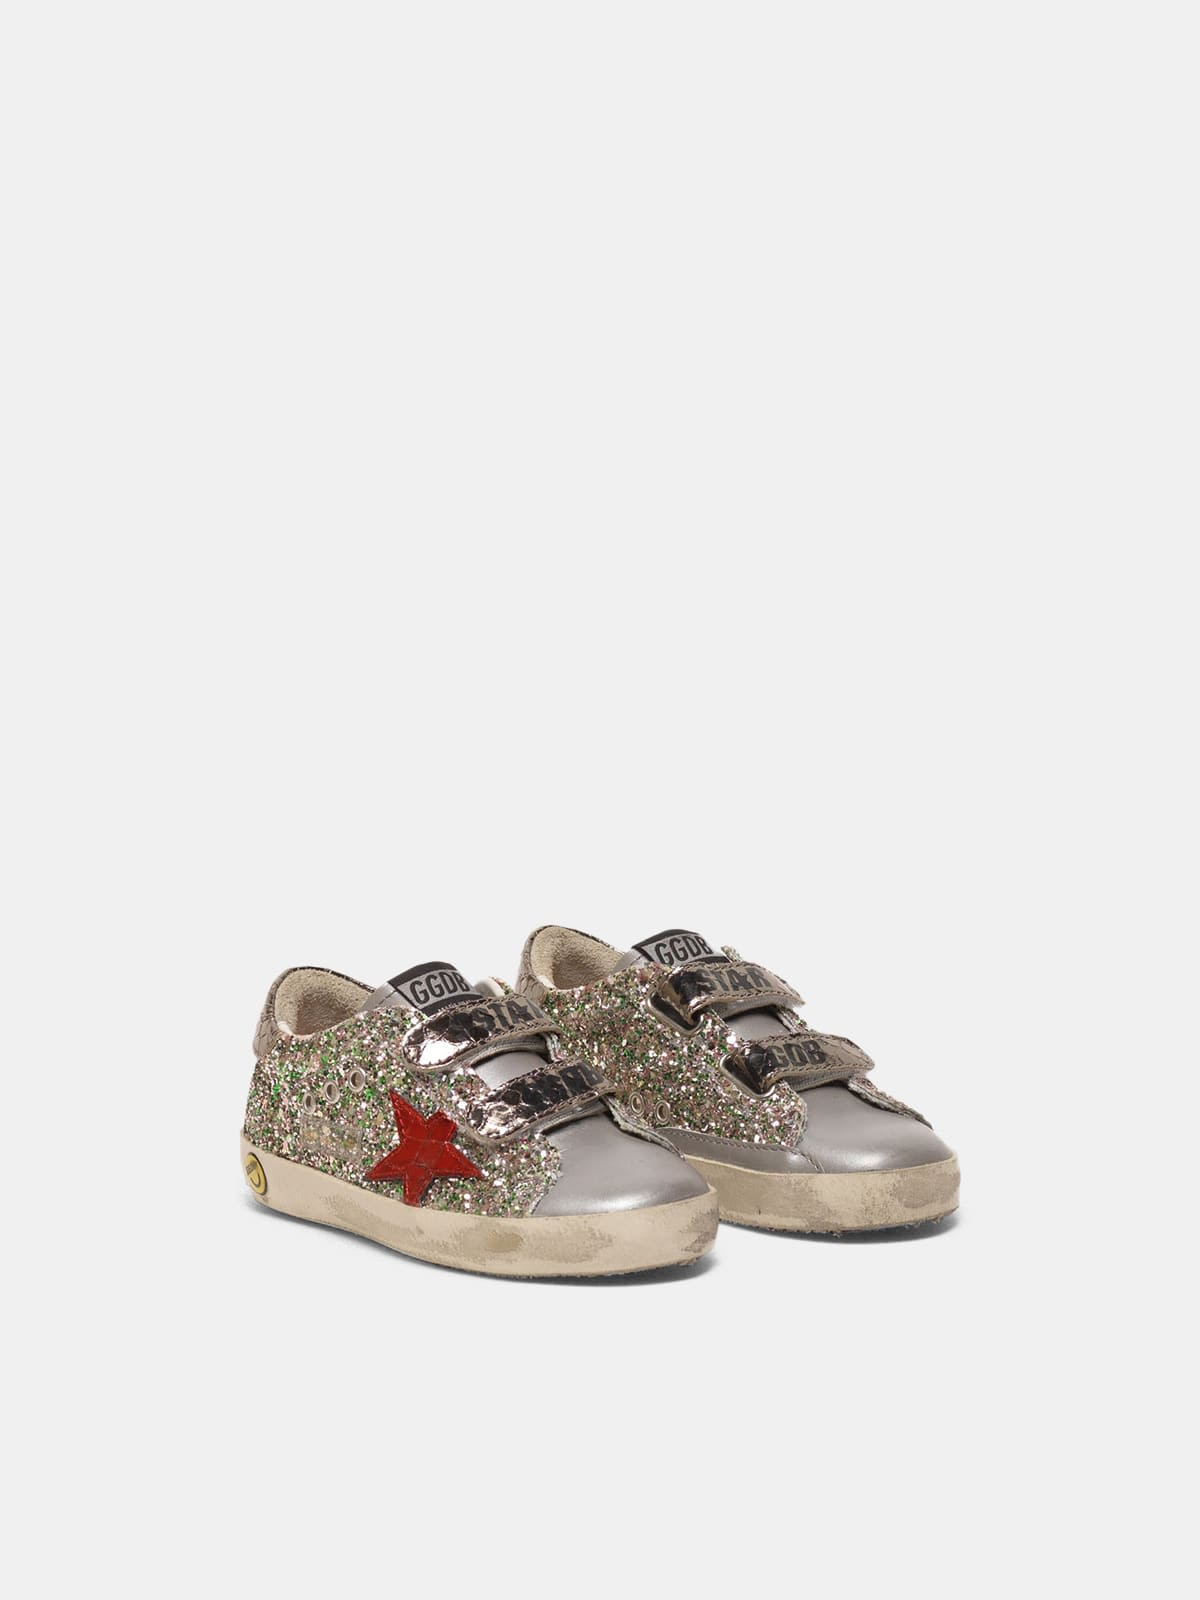 Old School sneakers with glitter and red star